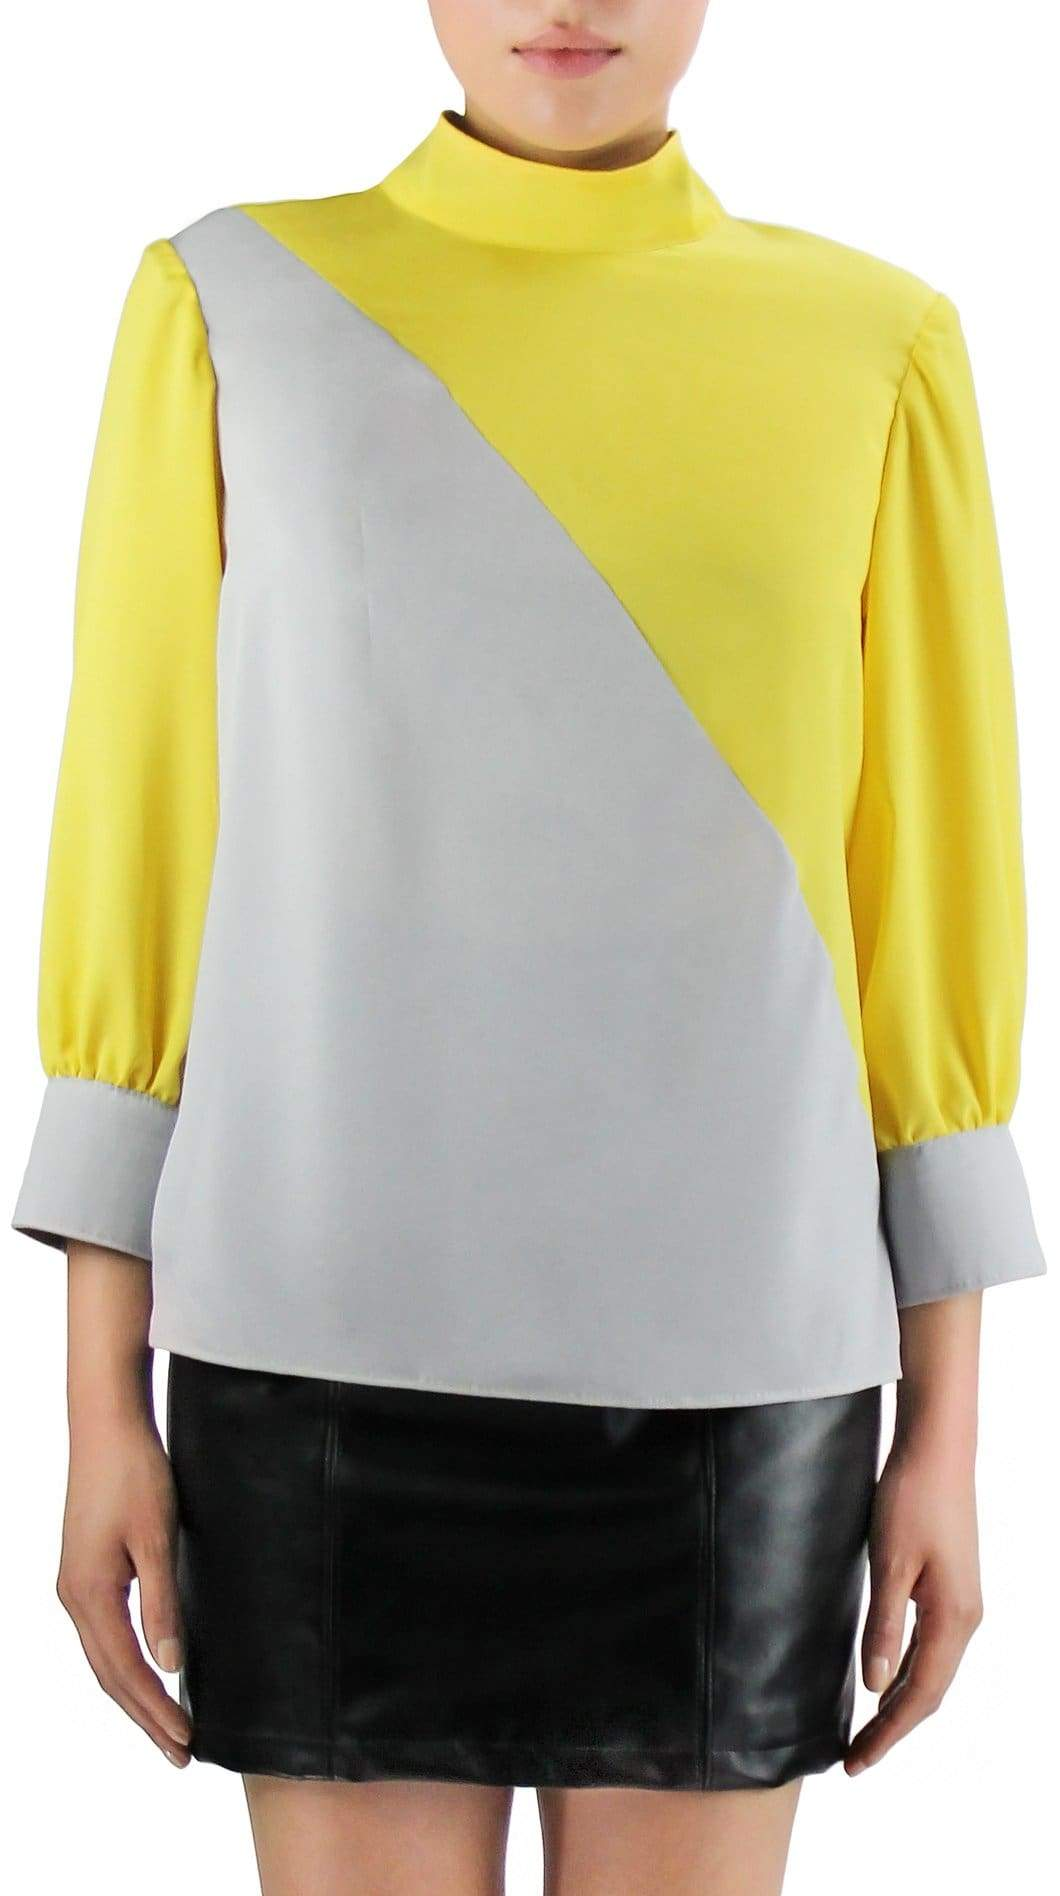 Starstruck Tie Blouse by Meghan Hughes | Nineteenth Amendment